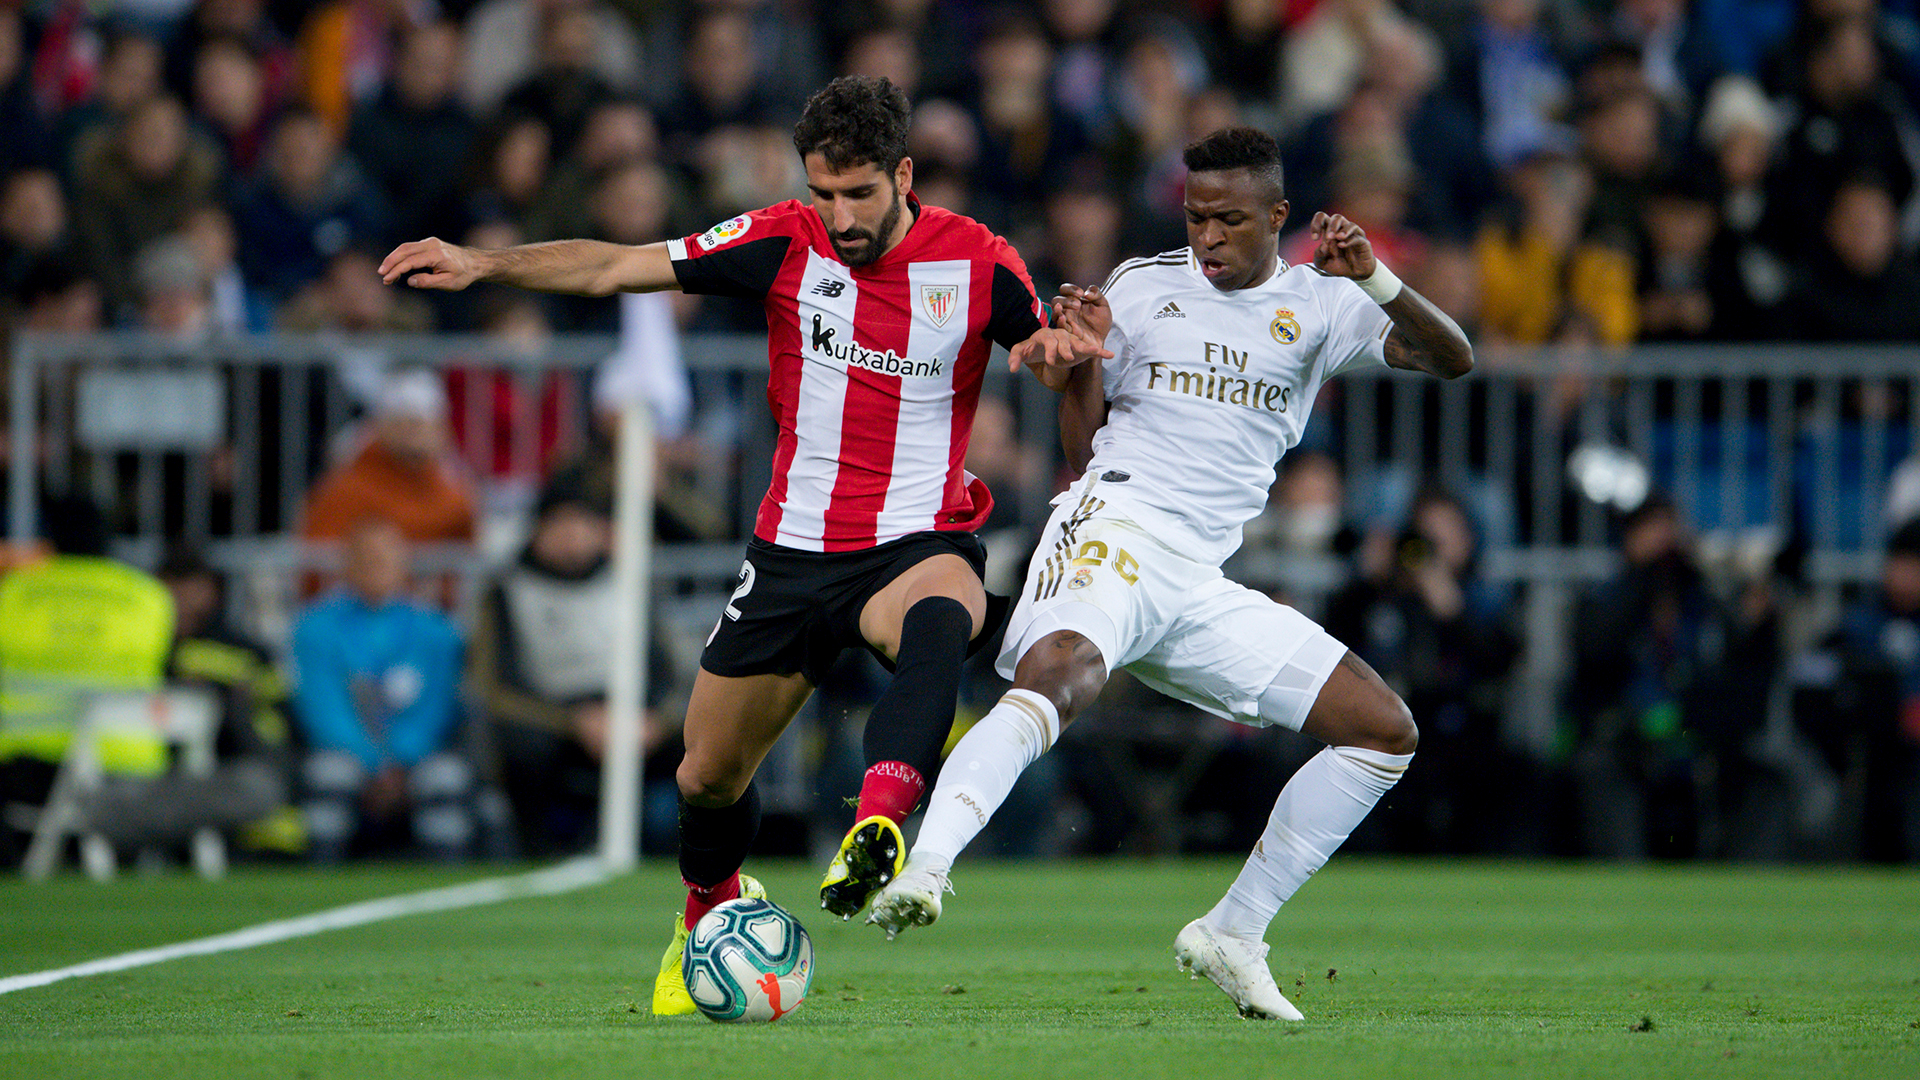 The most recent Real Madrid vs Athletic Club